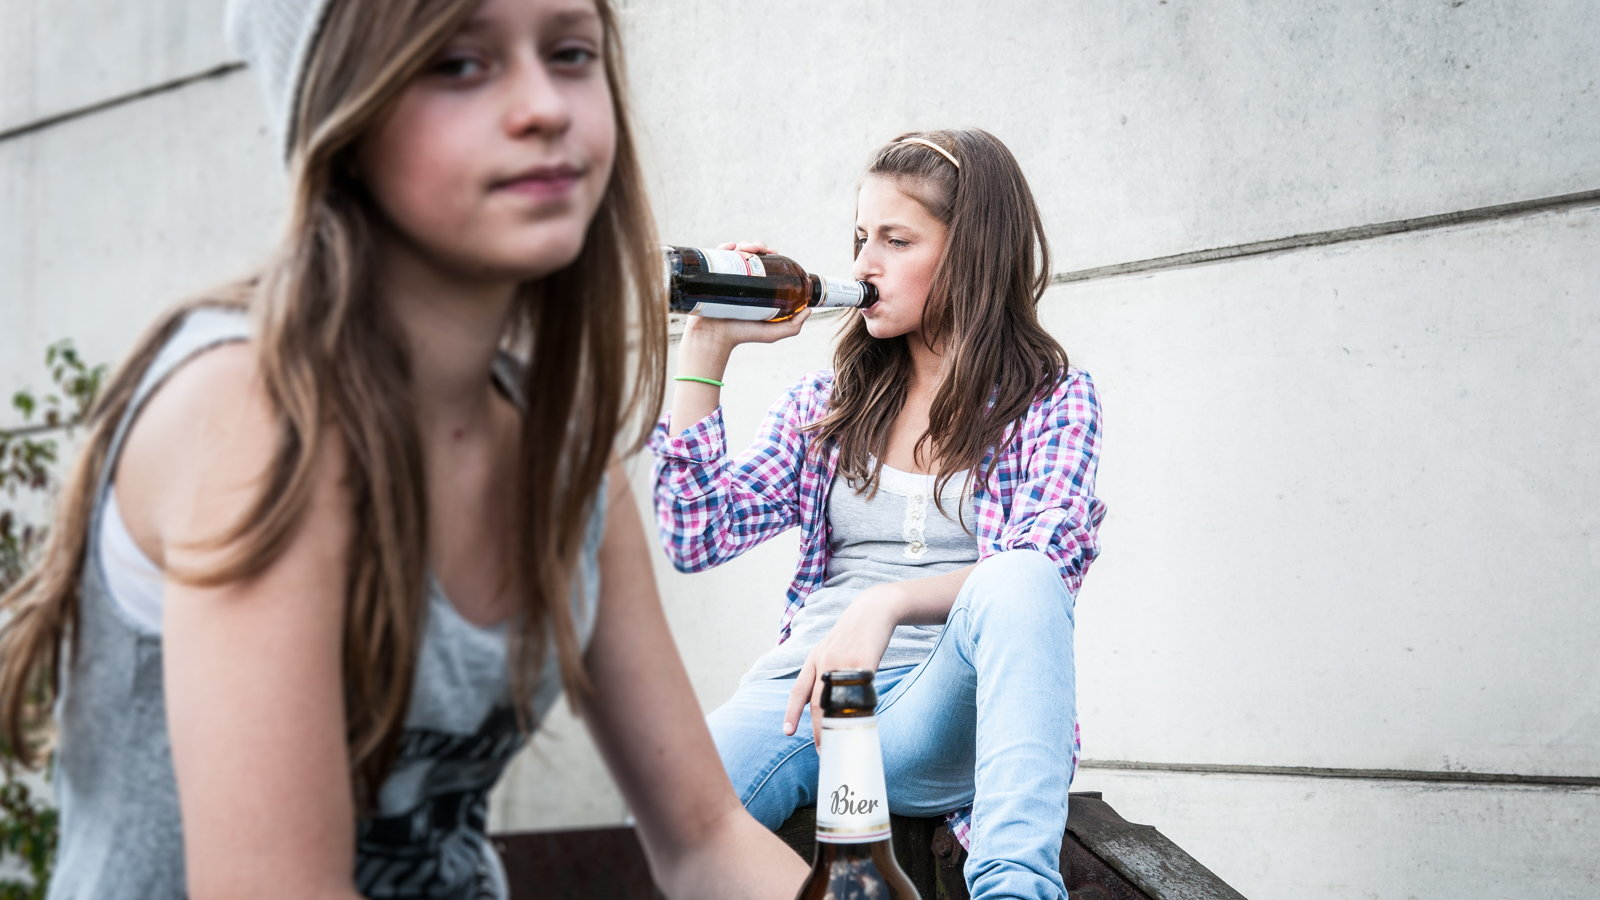 For teen drinking